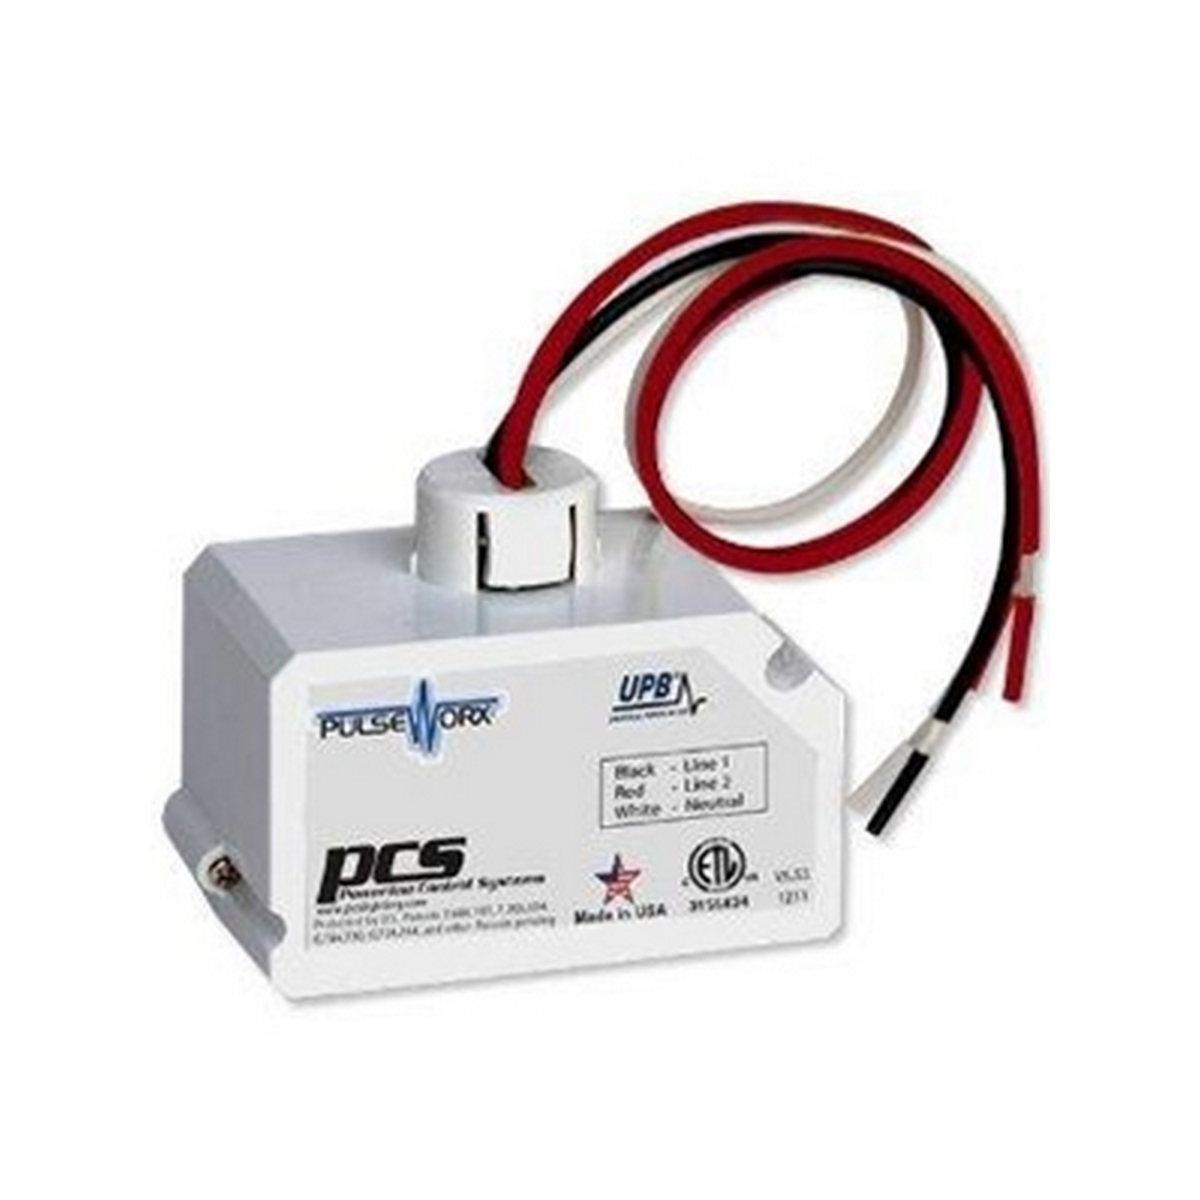 PulseWorx - Fixture Module - Relay, 1 Channel, 20A Max